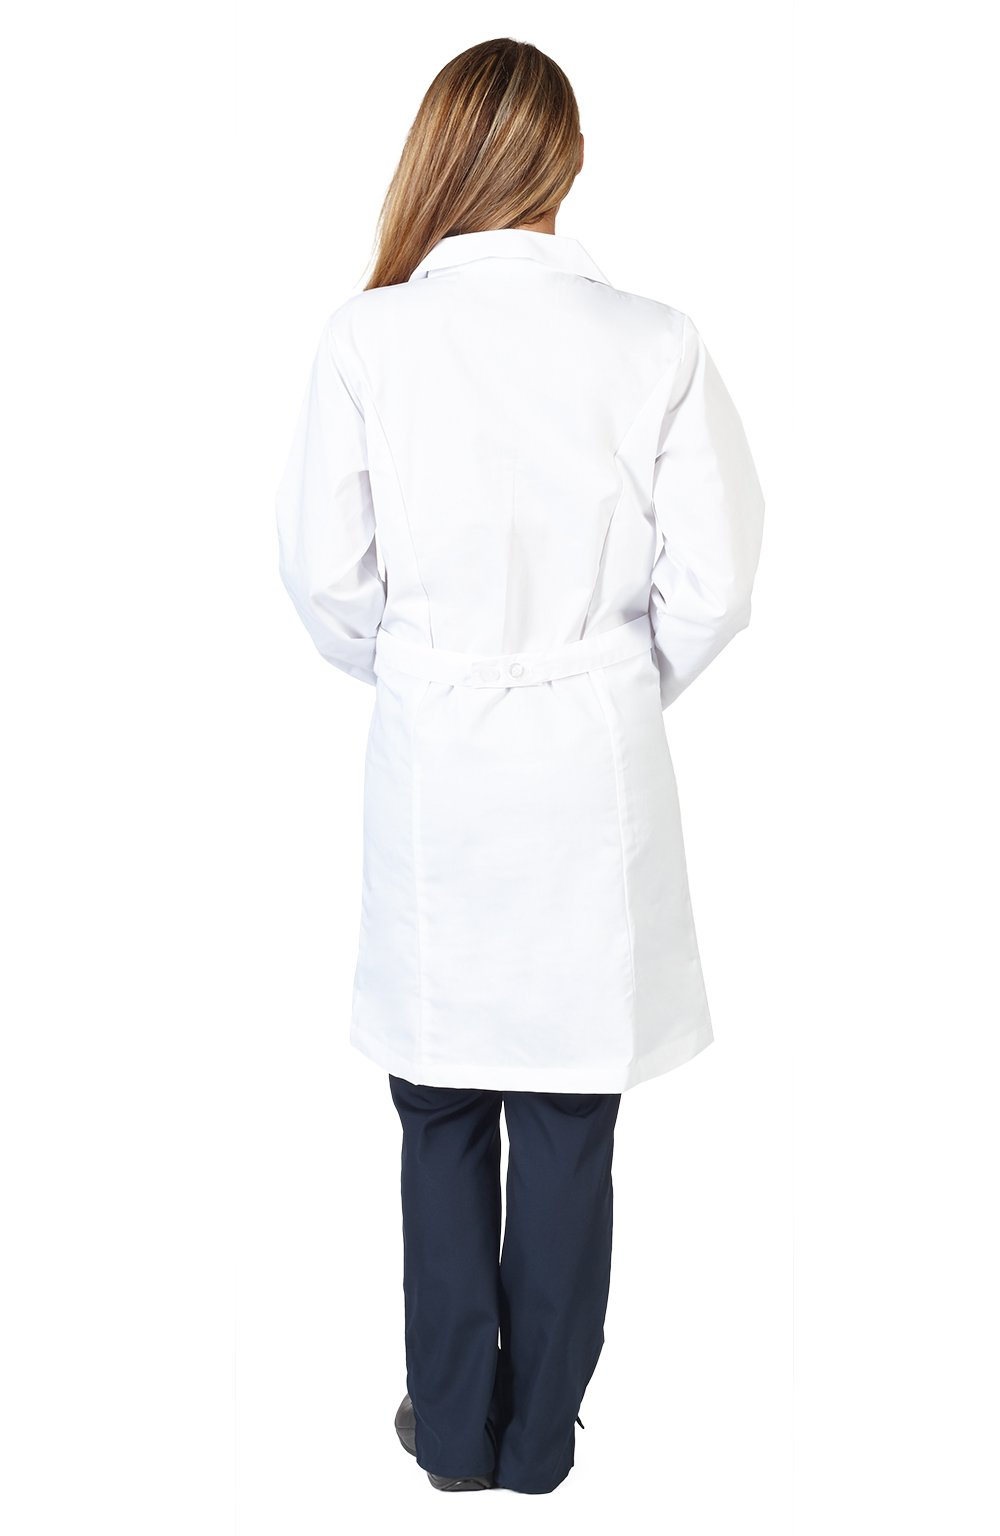 Natural Uniforms Unisex 40 inch Lab Coat, White (XXSmall) by Natural Uniforms (Image #2)